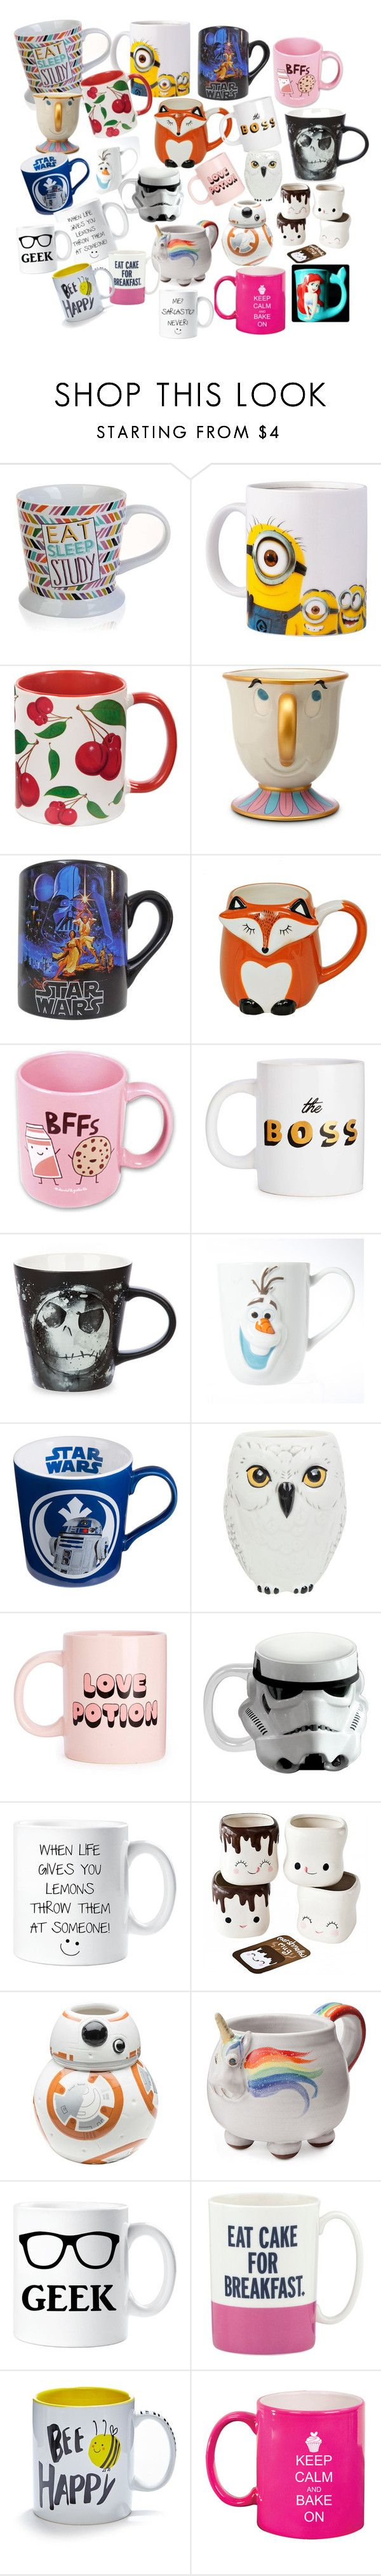 """""""Cool mugs"""" by kelskels27 ❤ liked on Polyvore featuring interior, interiors, interior design, home, home decor, interior decorating, Disney, Suck, Vandor and ZAK"""